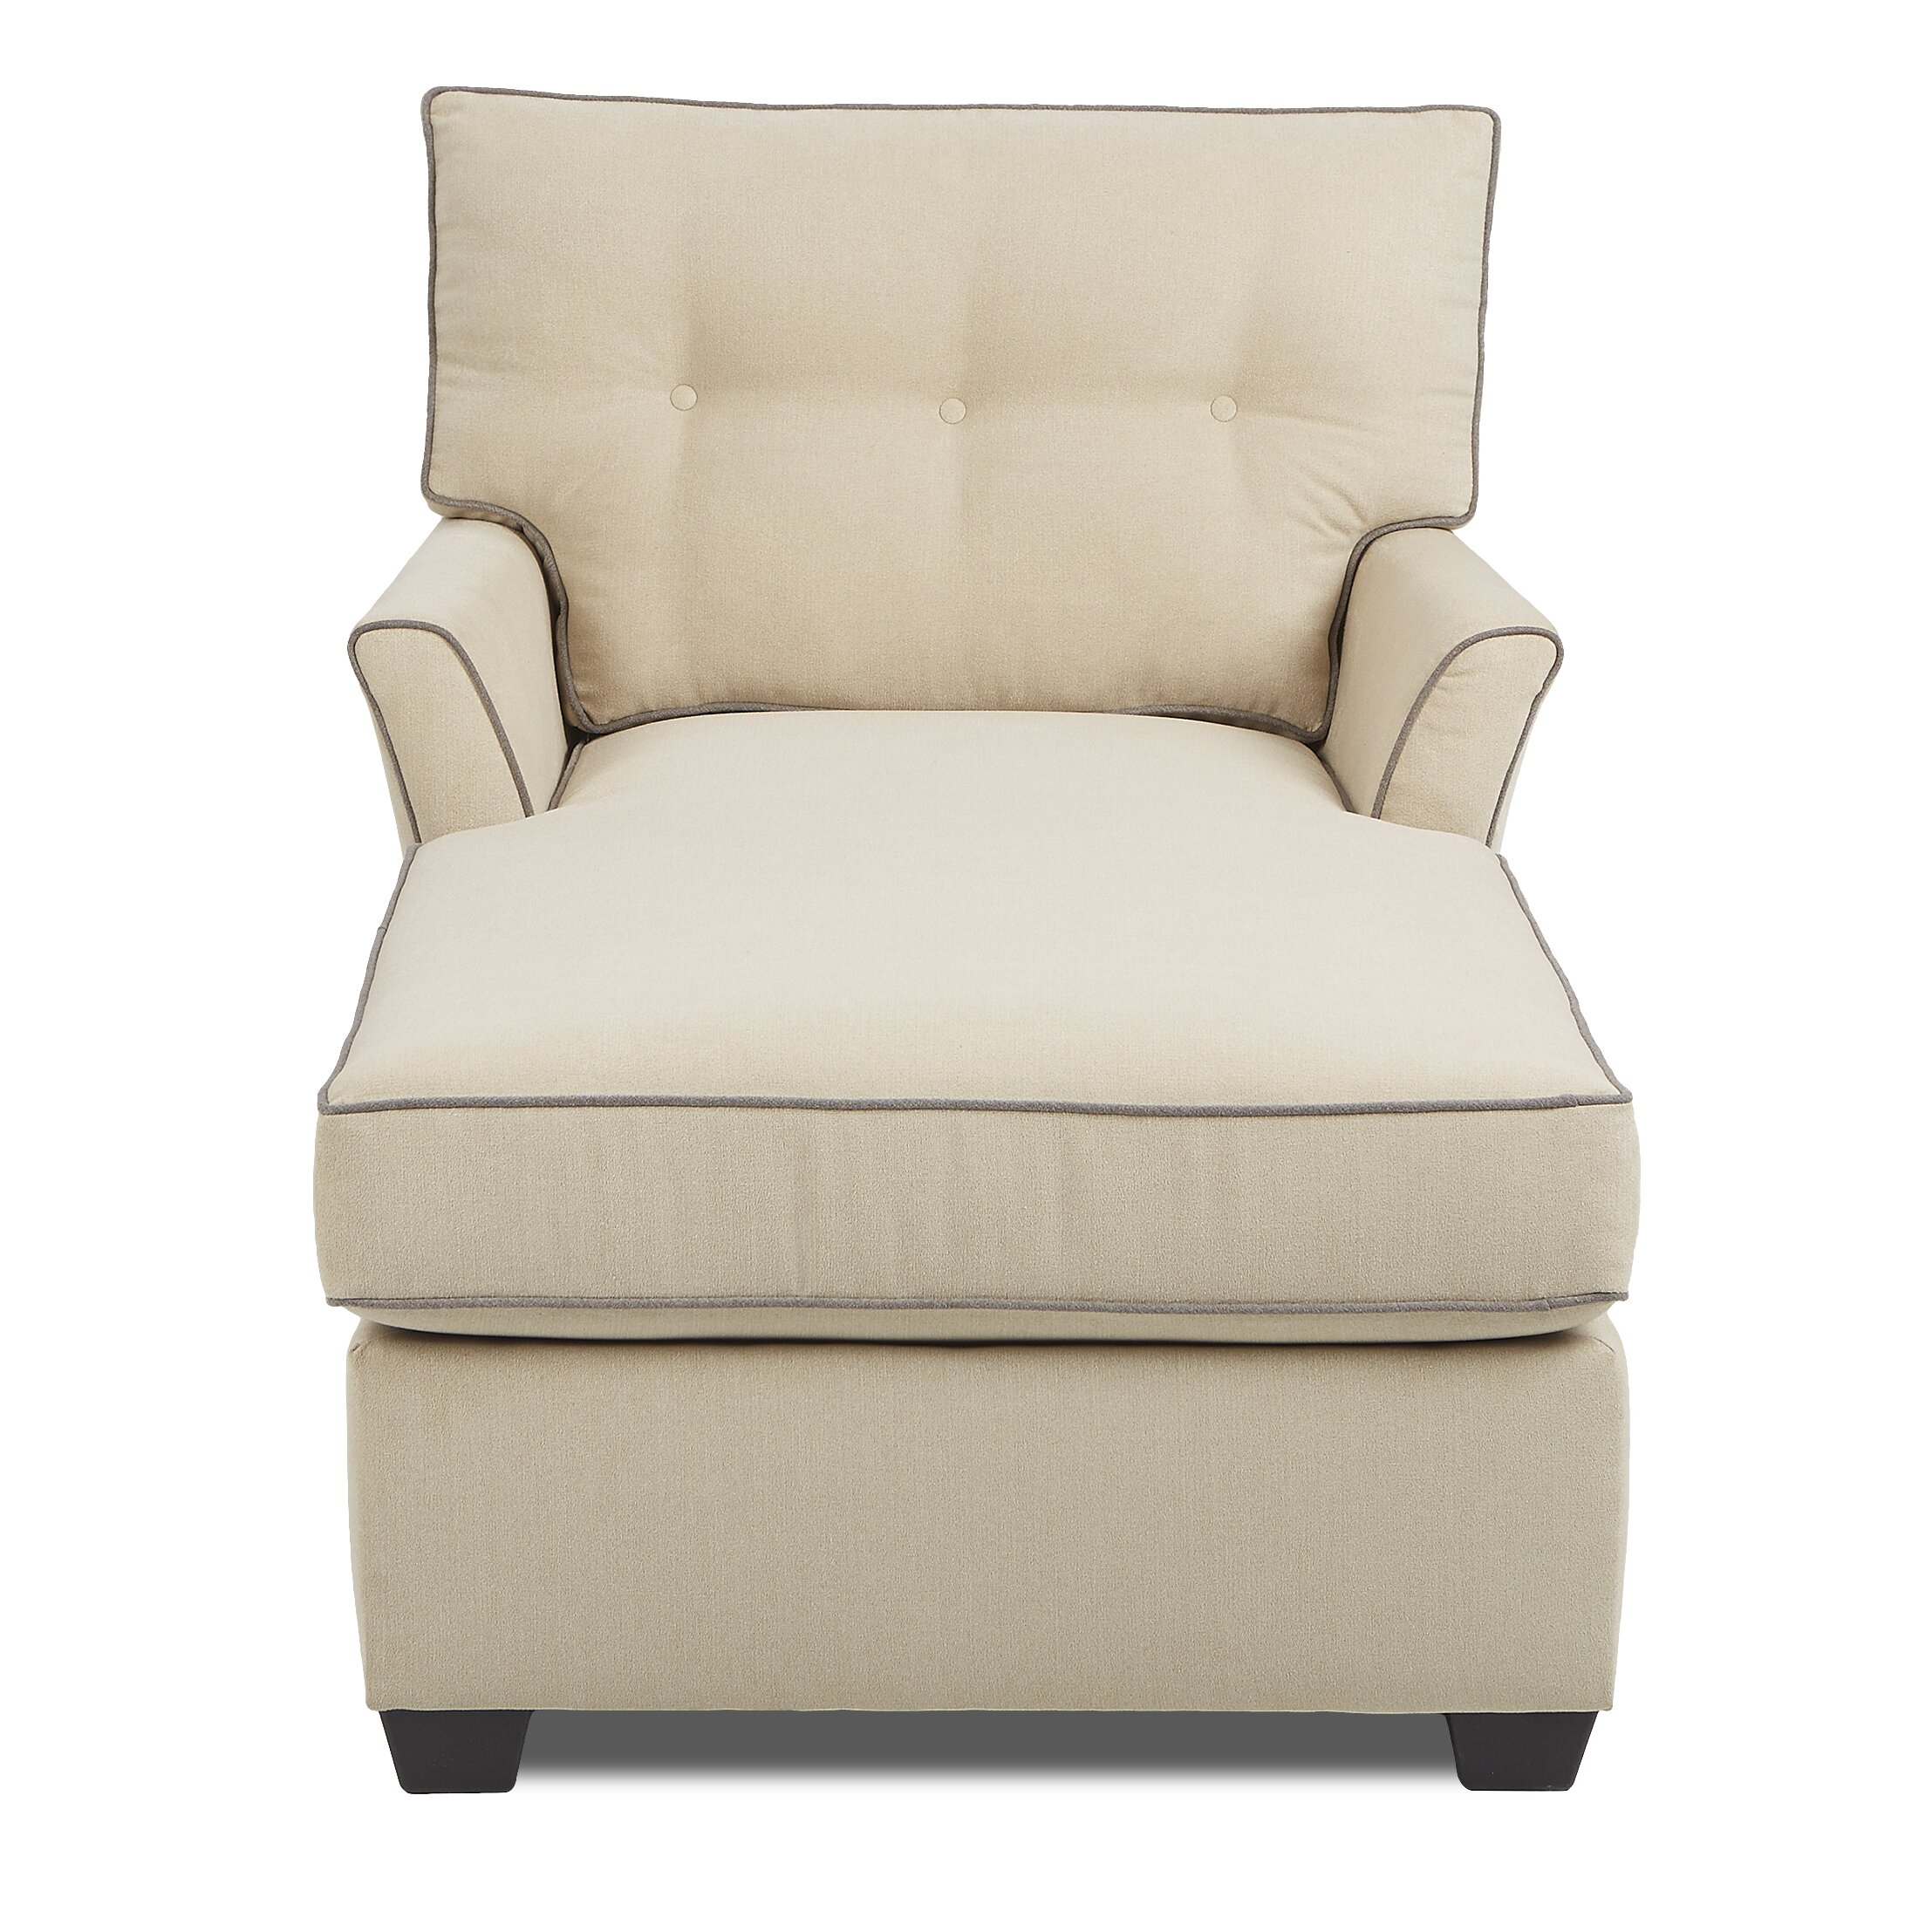 Klaussner Furniture Lovell Chaise Lounge & Reviews